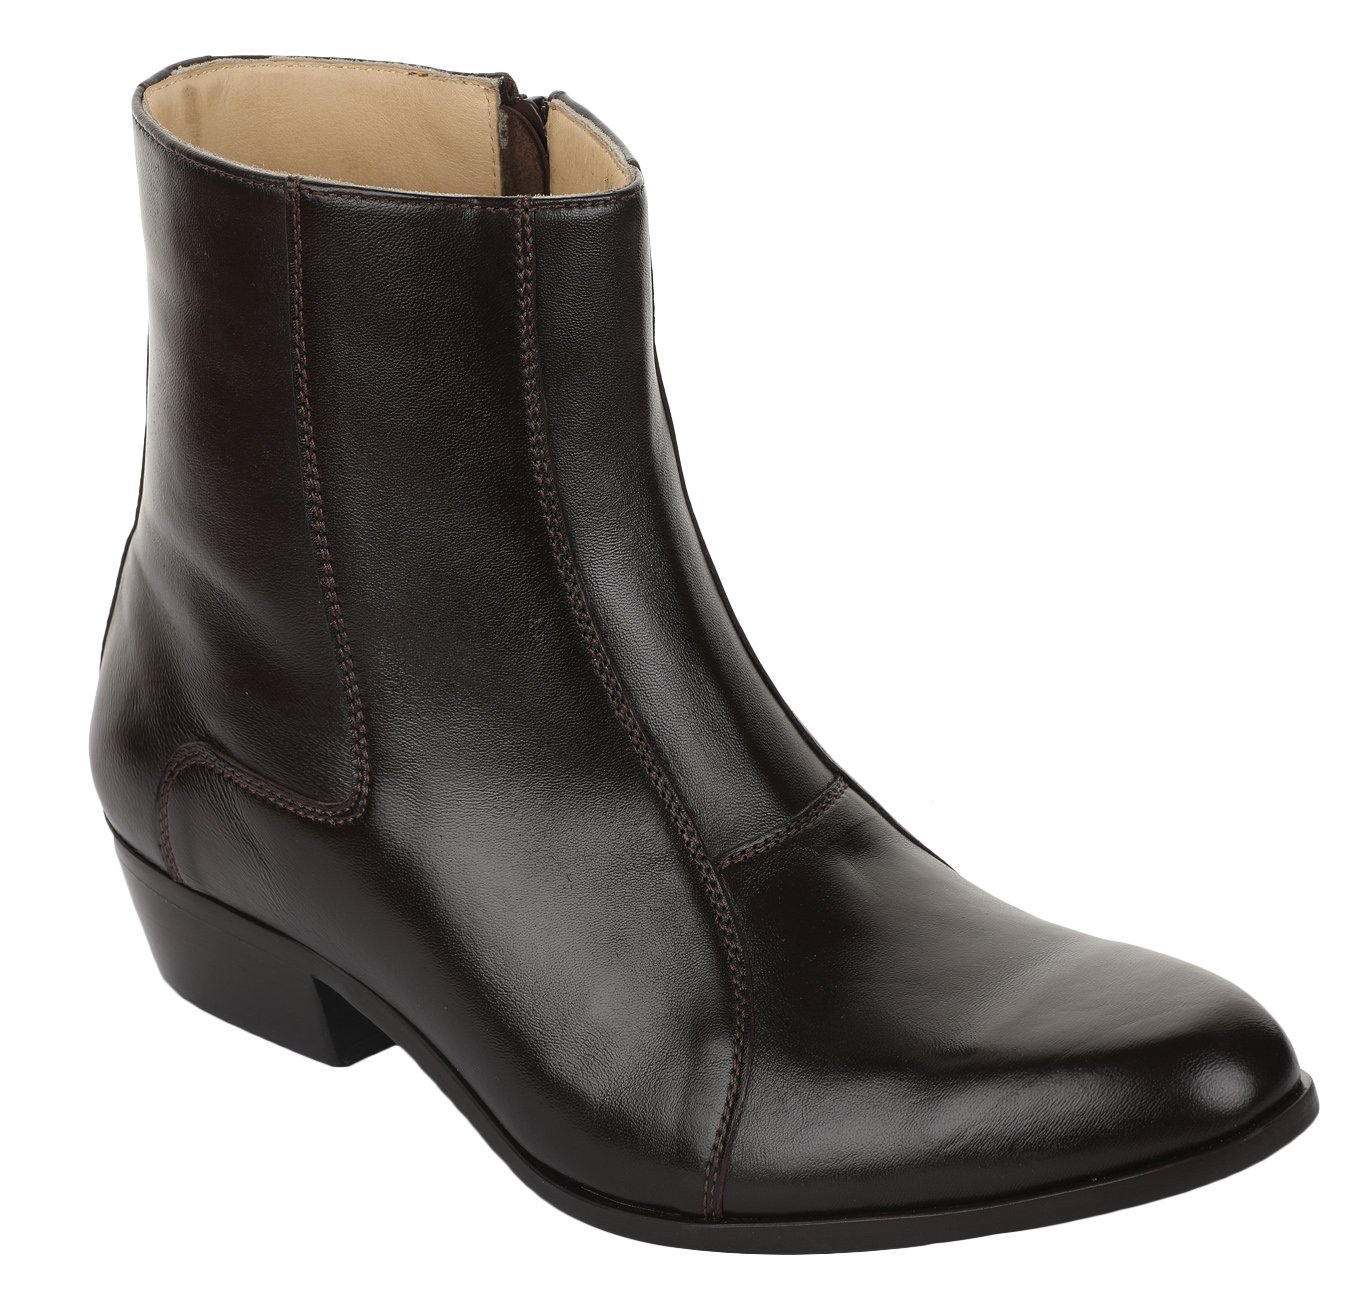 Liberty Men's Genuine Leather Side Zipper Ankle Boots Formal Dress Shoes